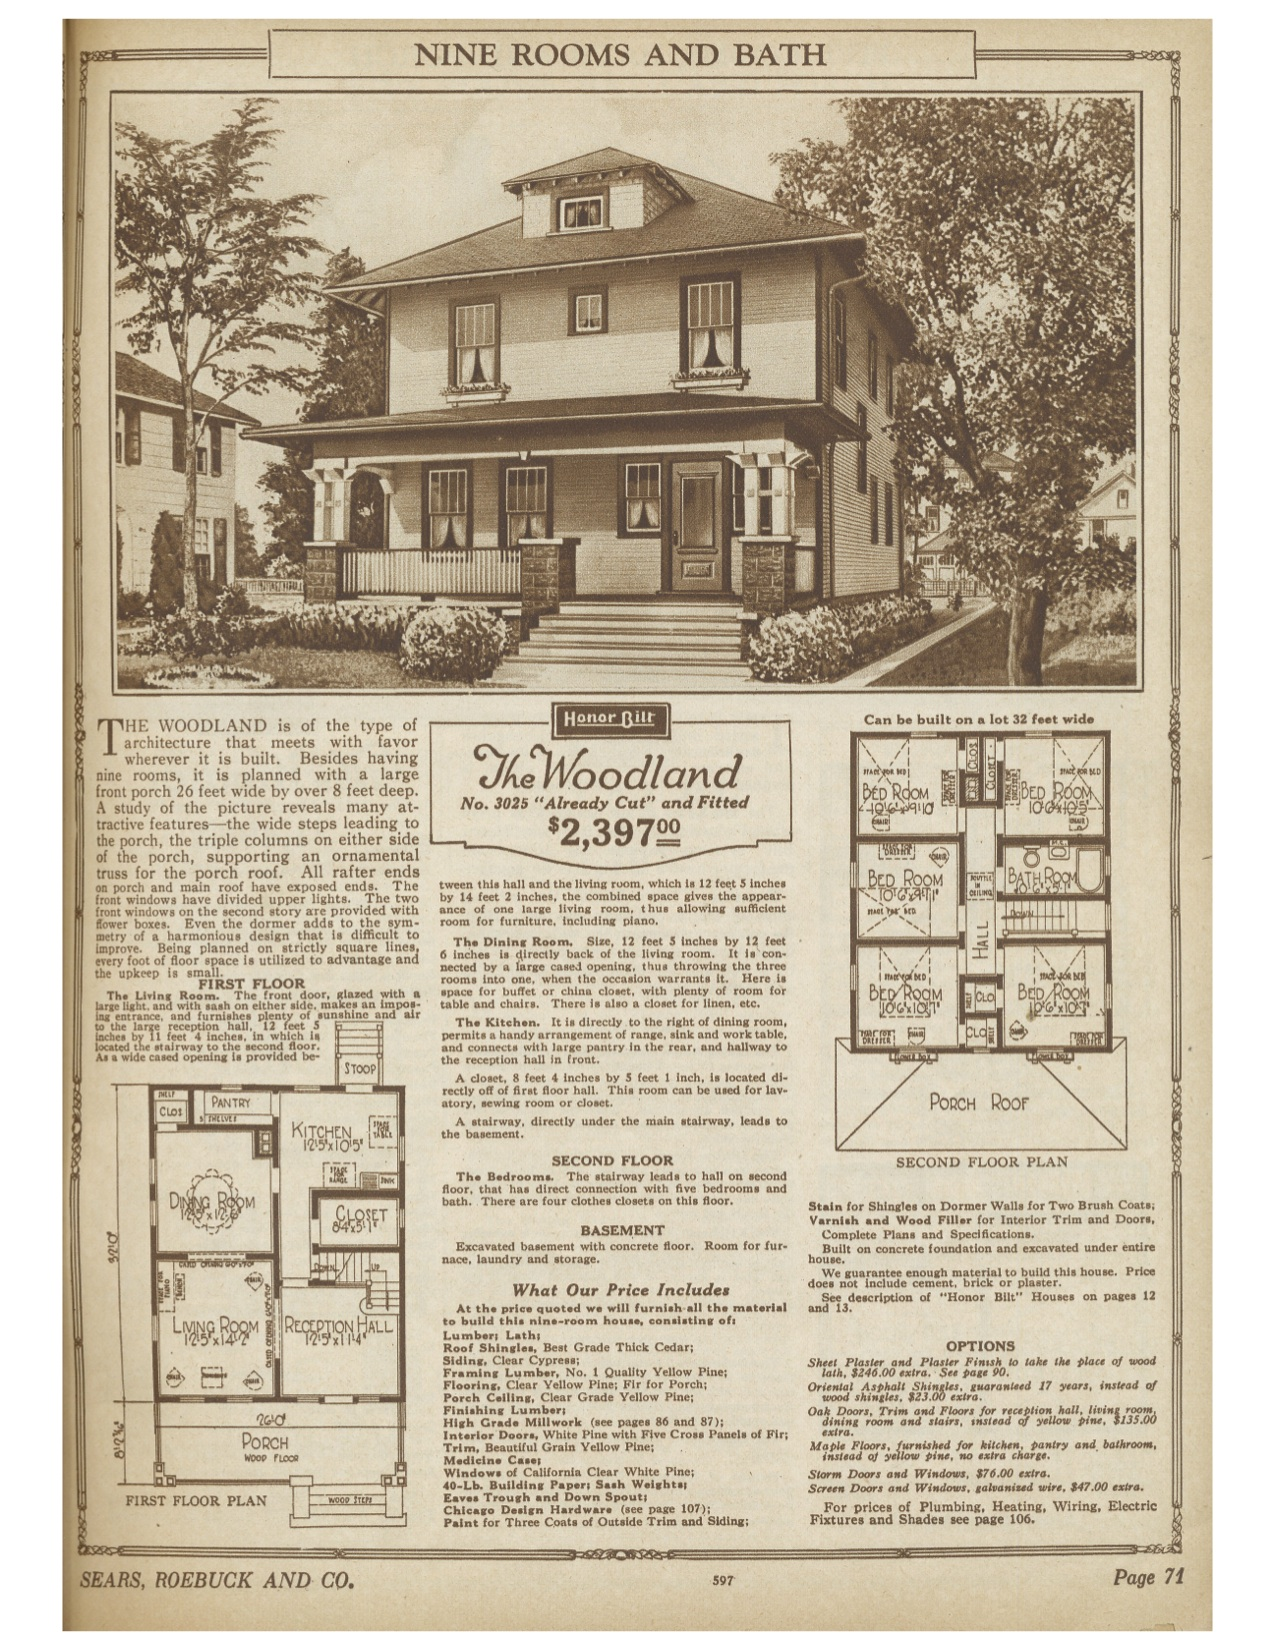 authenticate a Sears kit house – DC Historic Kit Houses and Real Estate